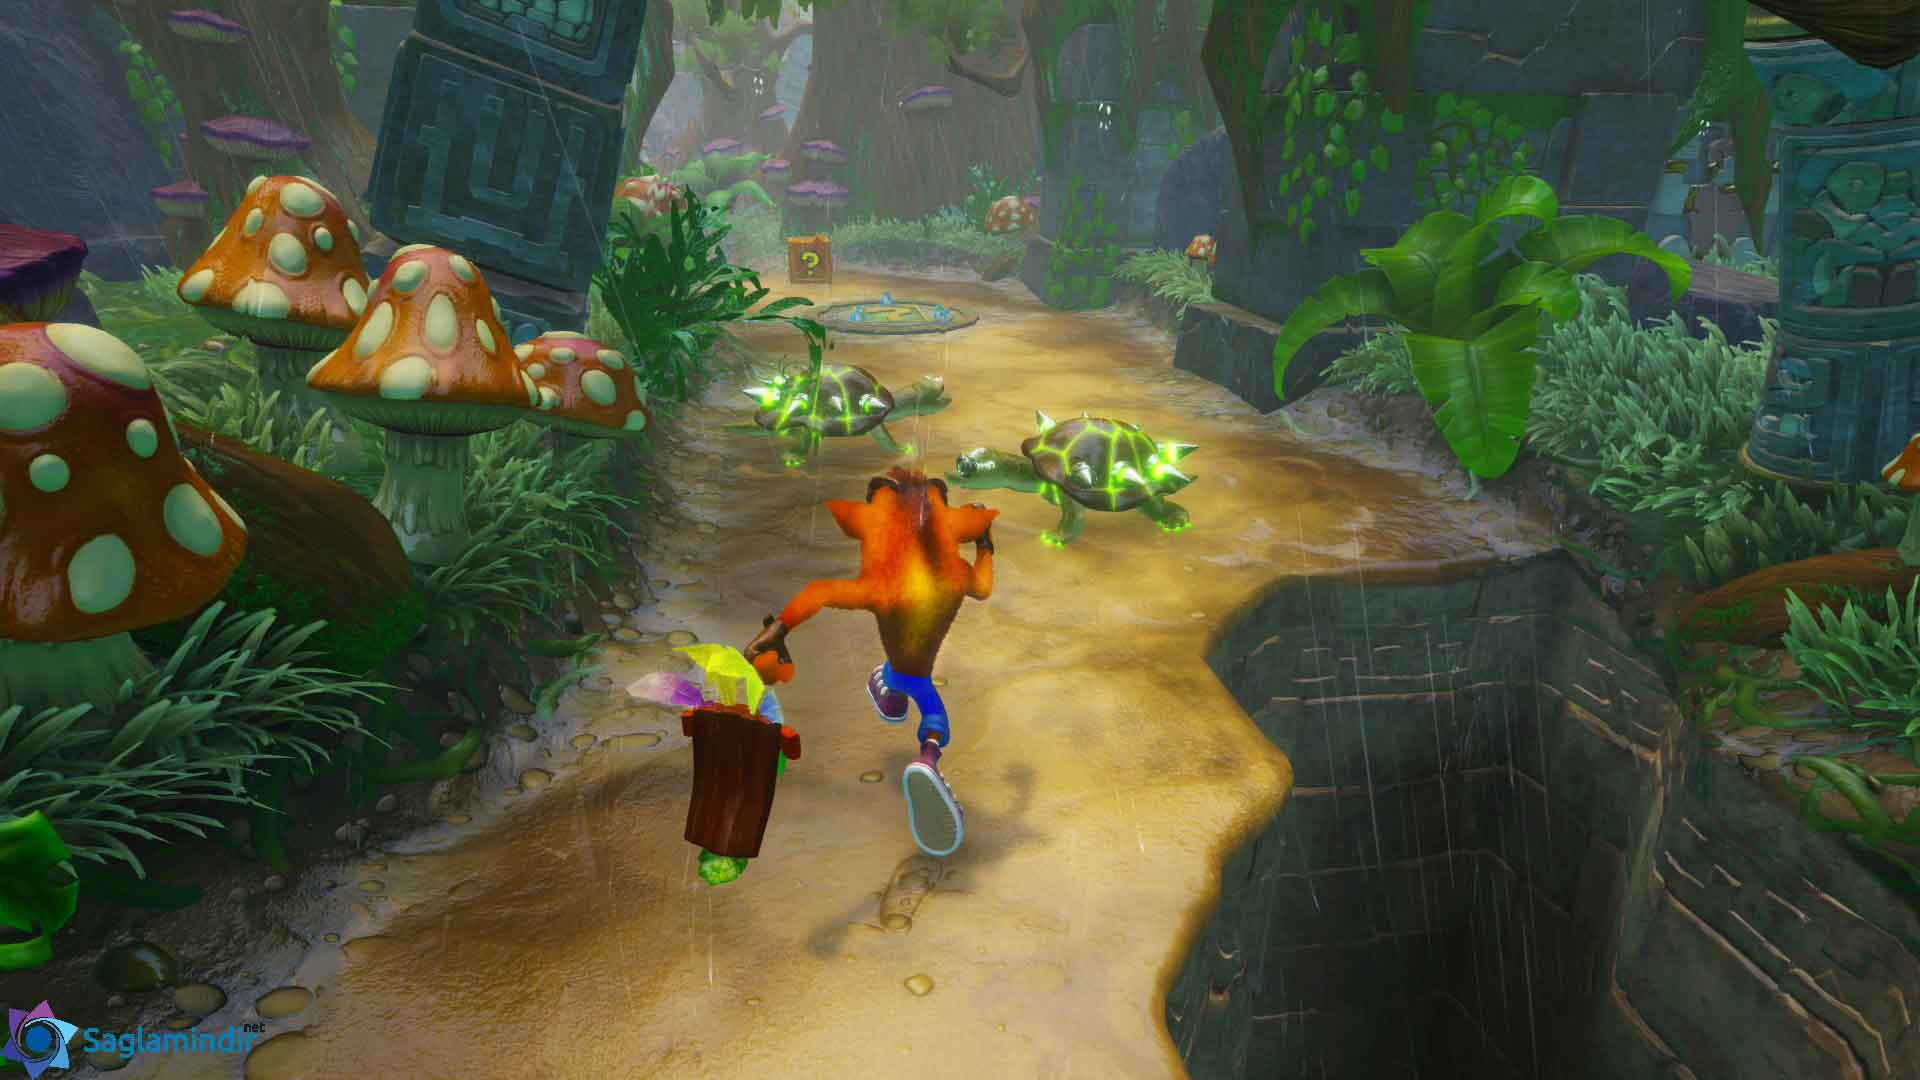 Crash-Bandicoot-N.-Sane-Trilogy-saglamindir